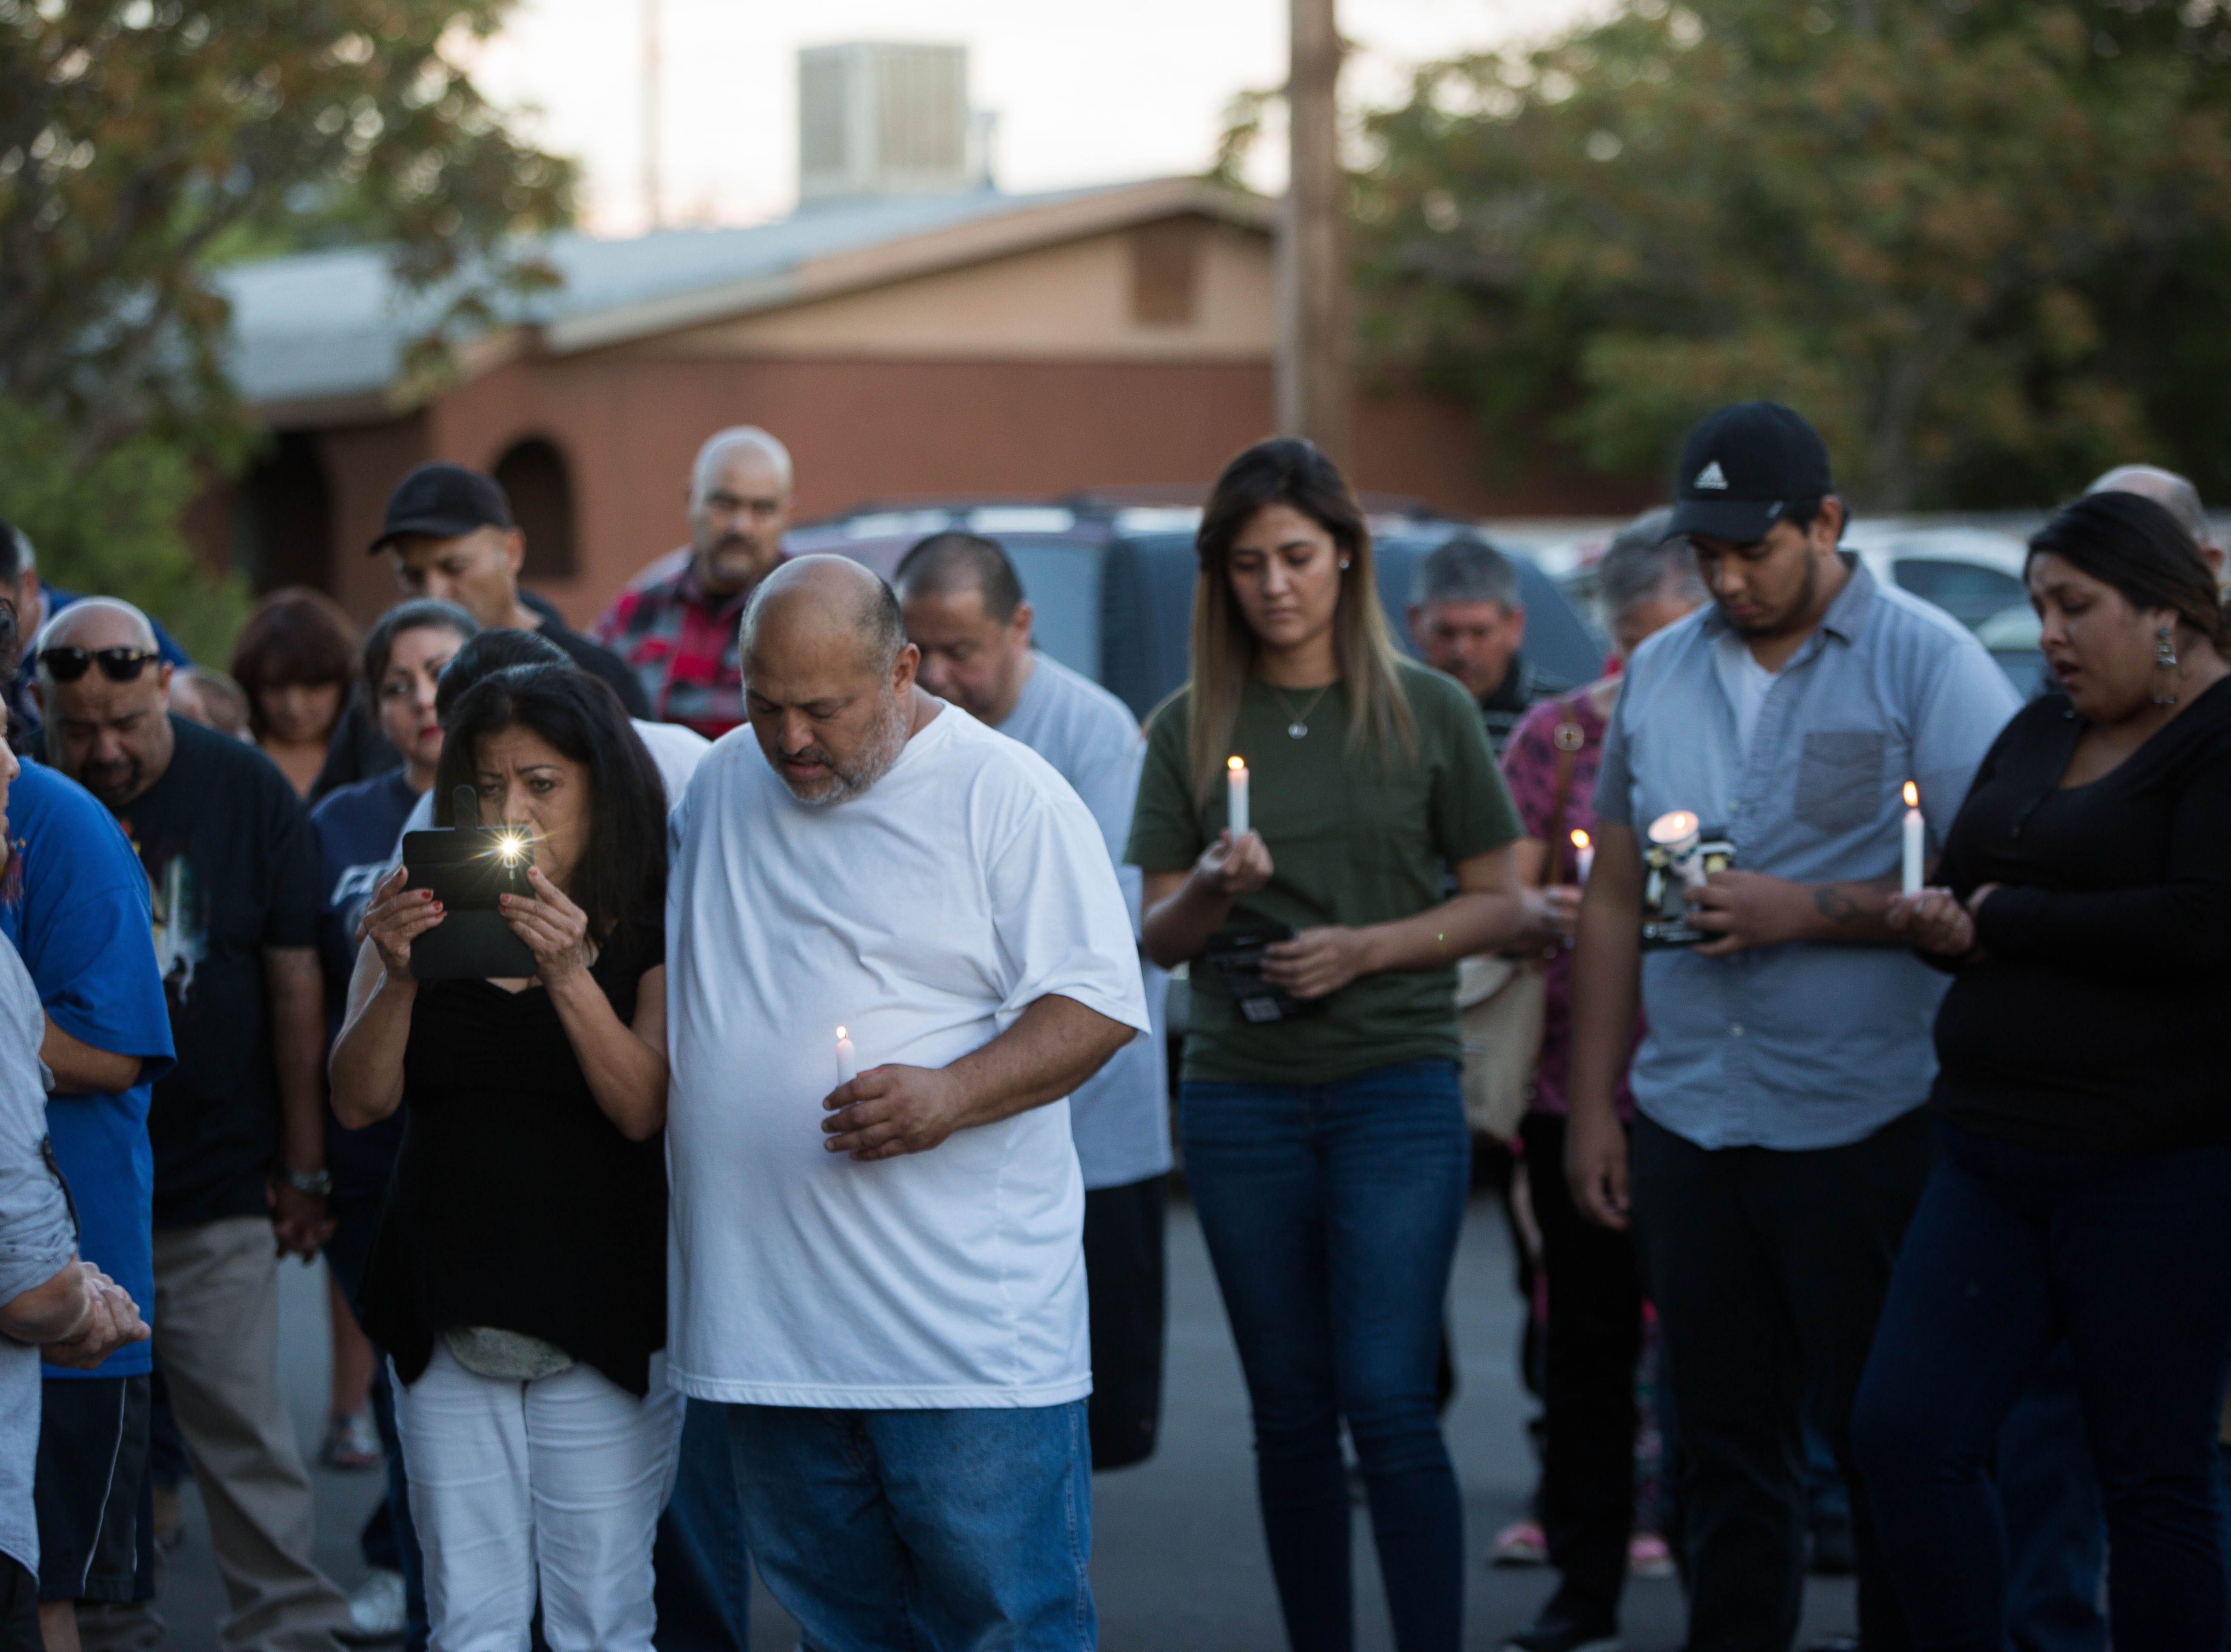 Joey Gonzales, center, grandfather of 2-year-old Fabiola Rodriguez, prays with the friends and family gathered for a candlelight vigil, Friday, September 7, 2018.